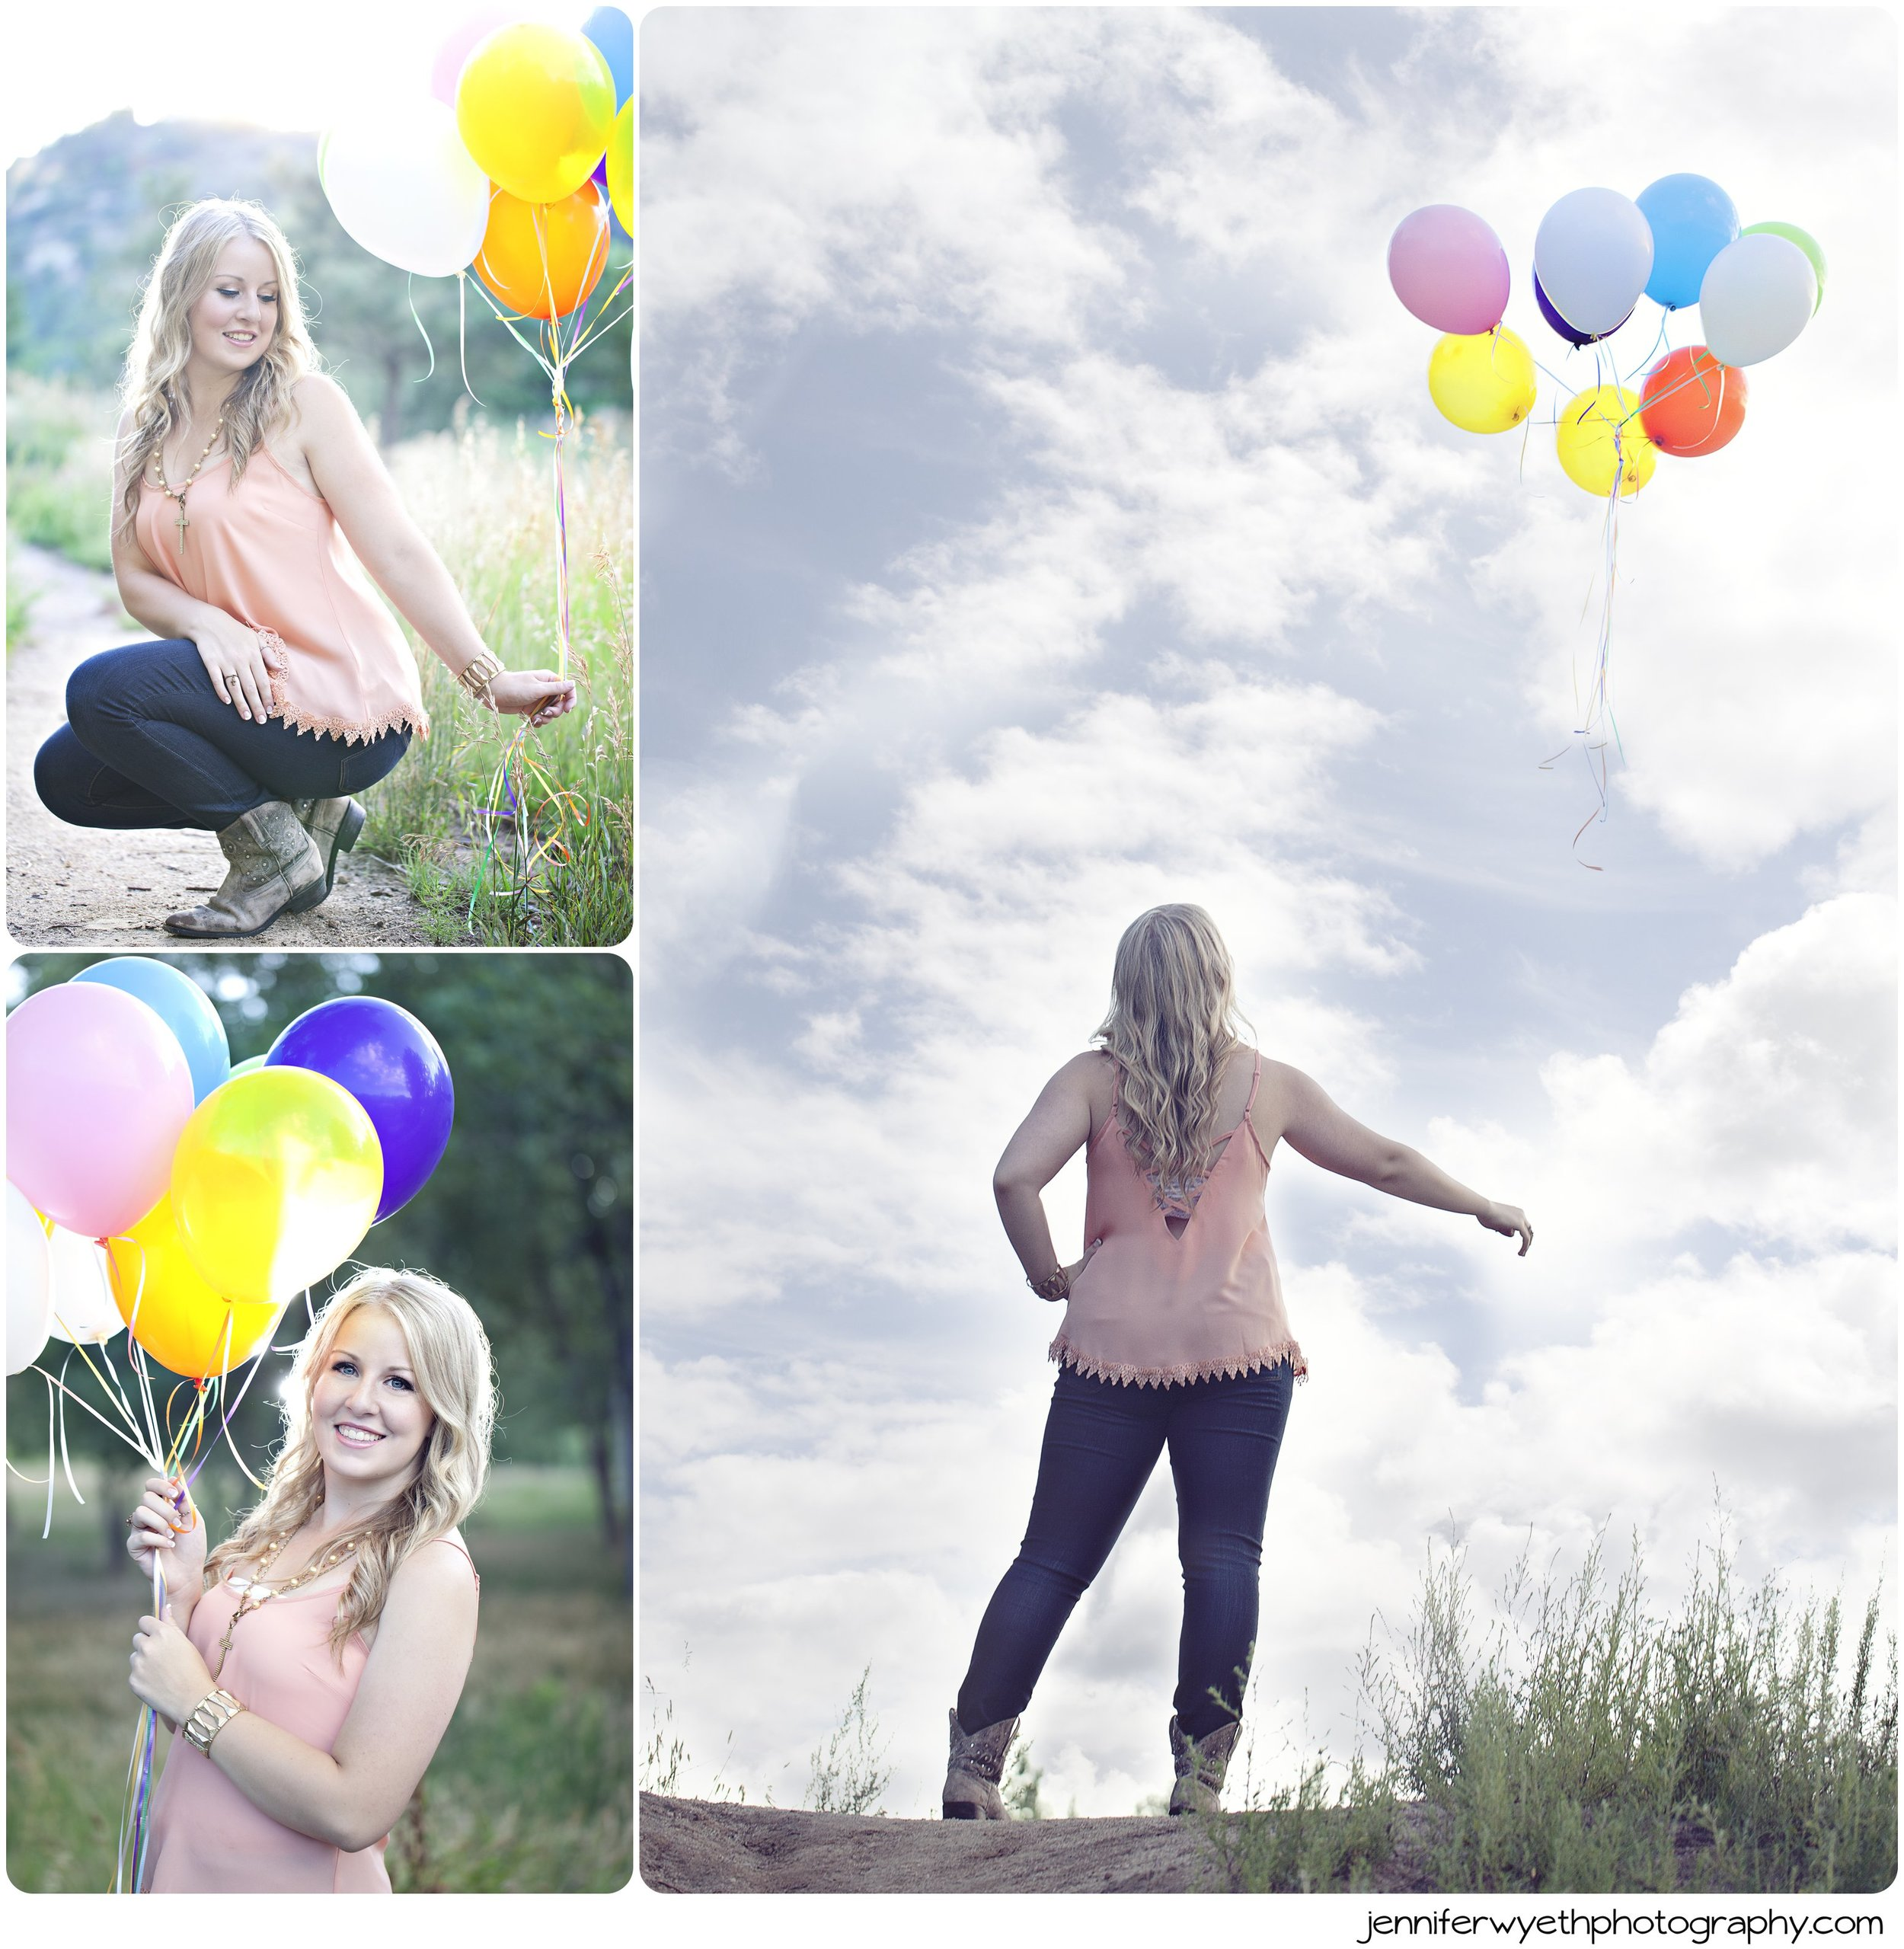 colorful balloons play a role in senior pictures as girl lets them fly away